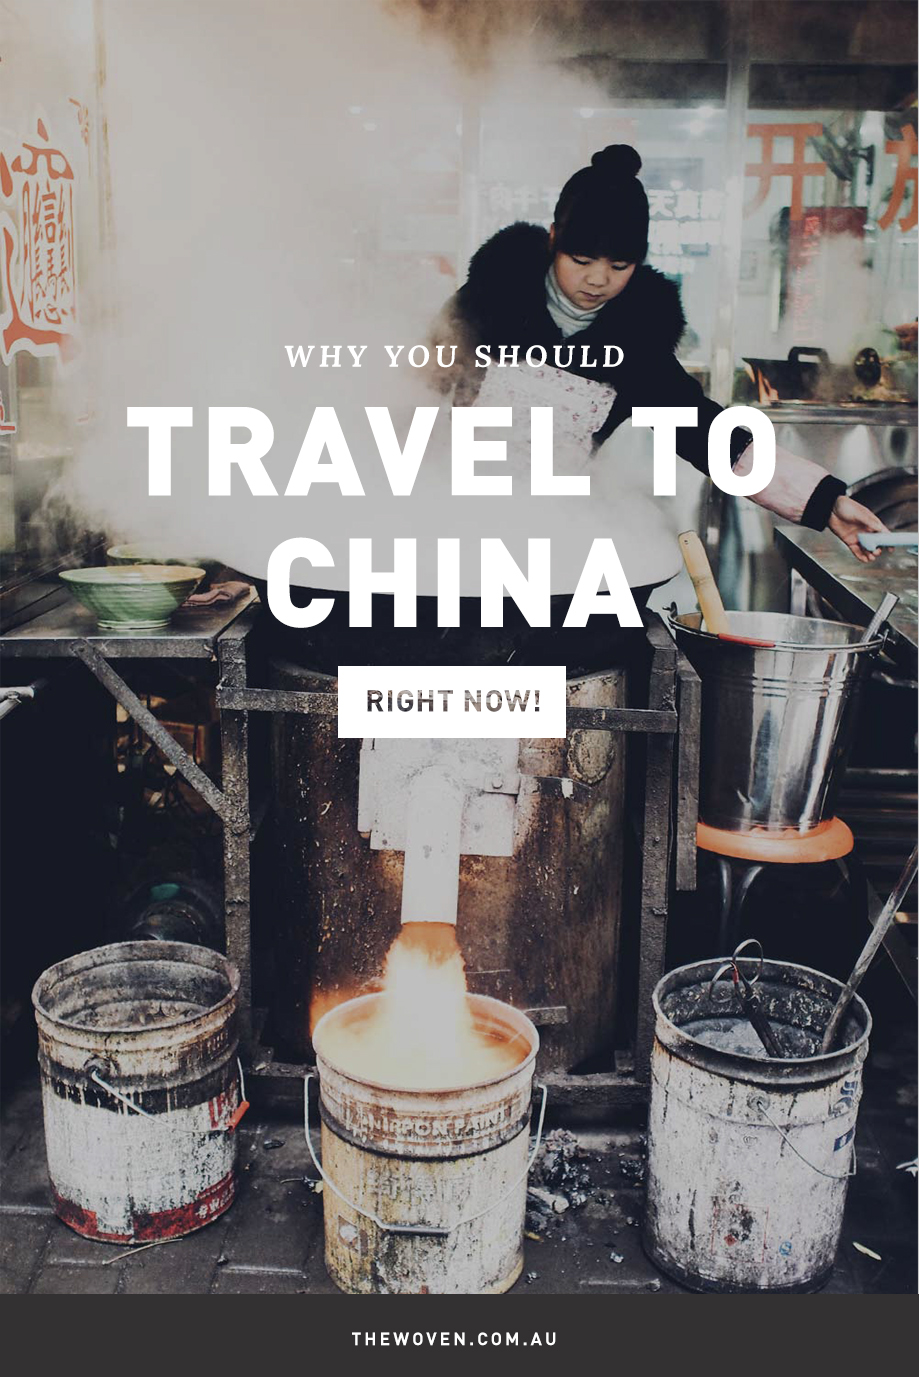 Why you should travel to China